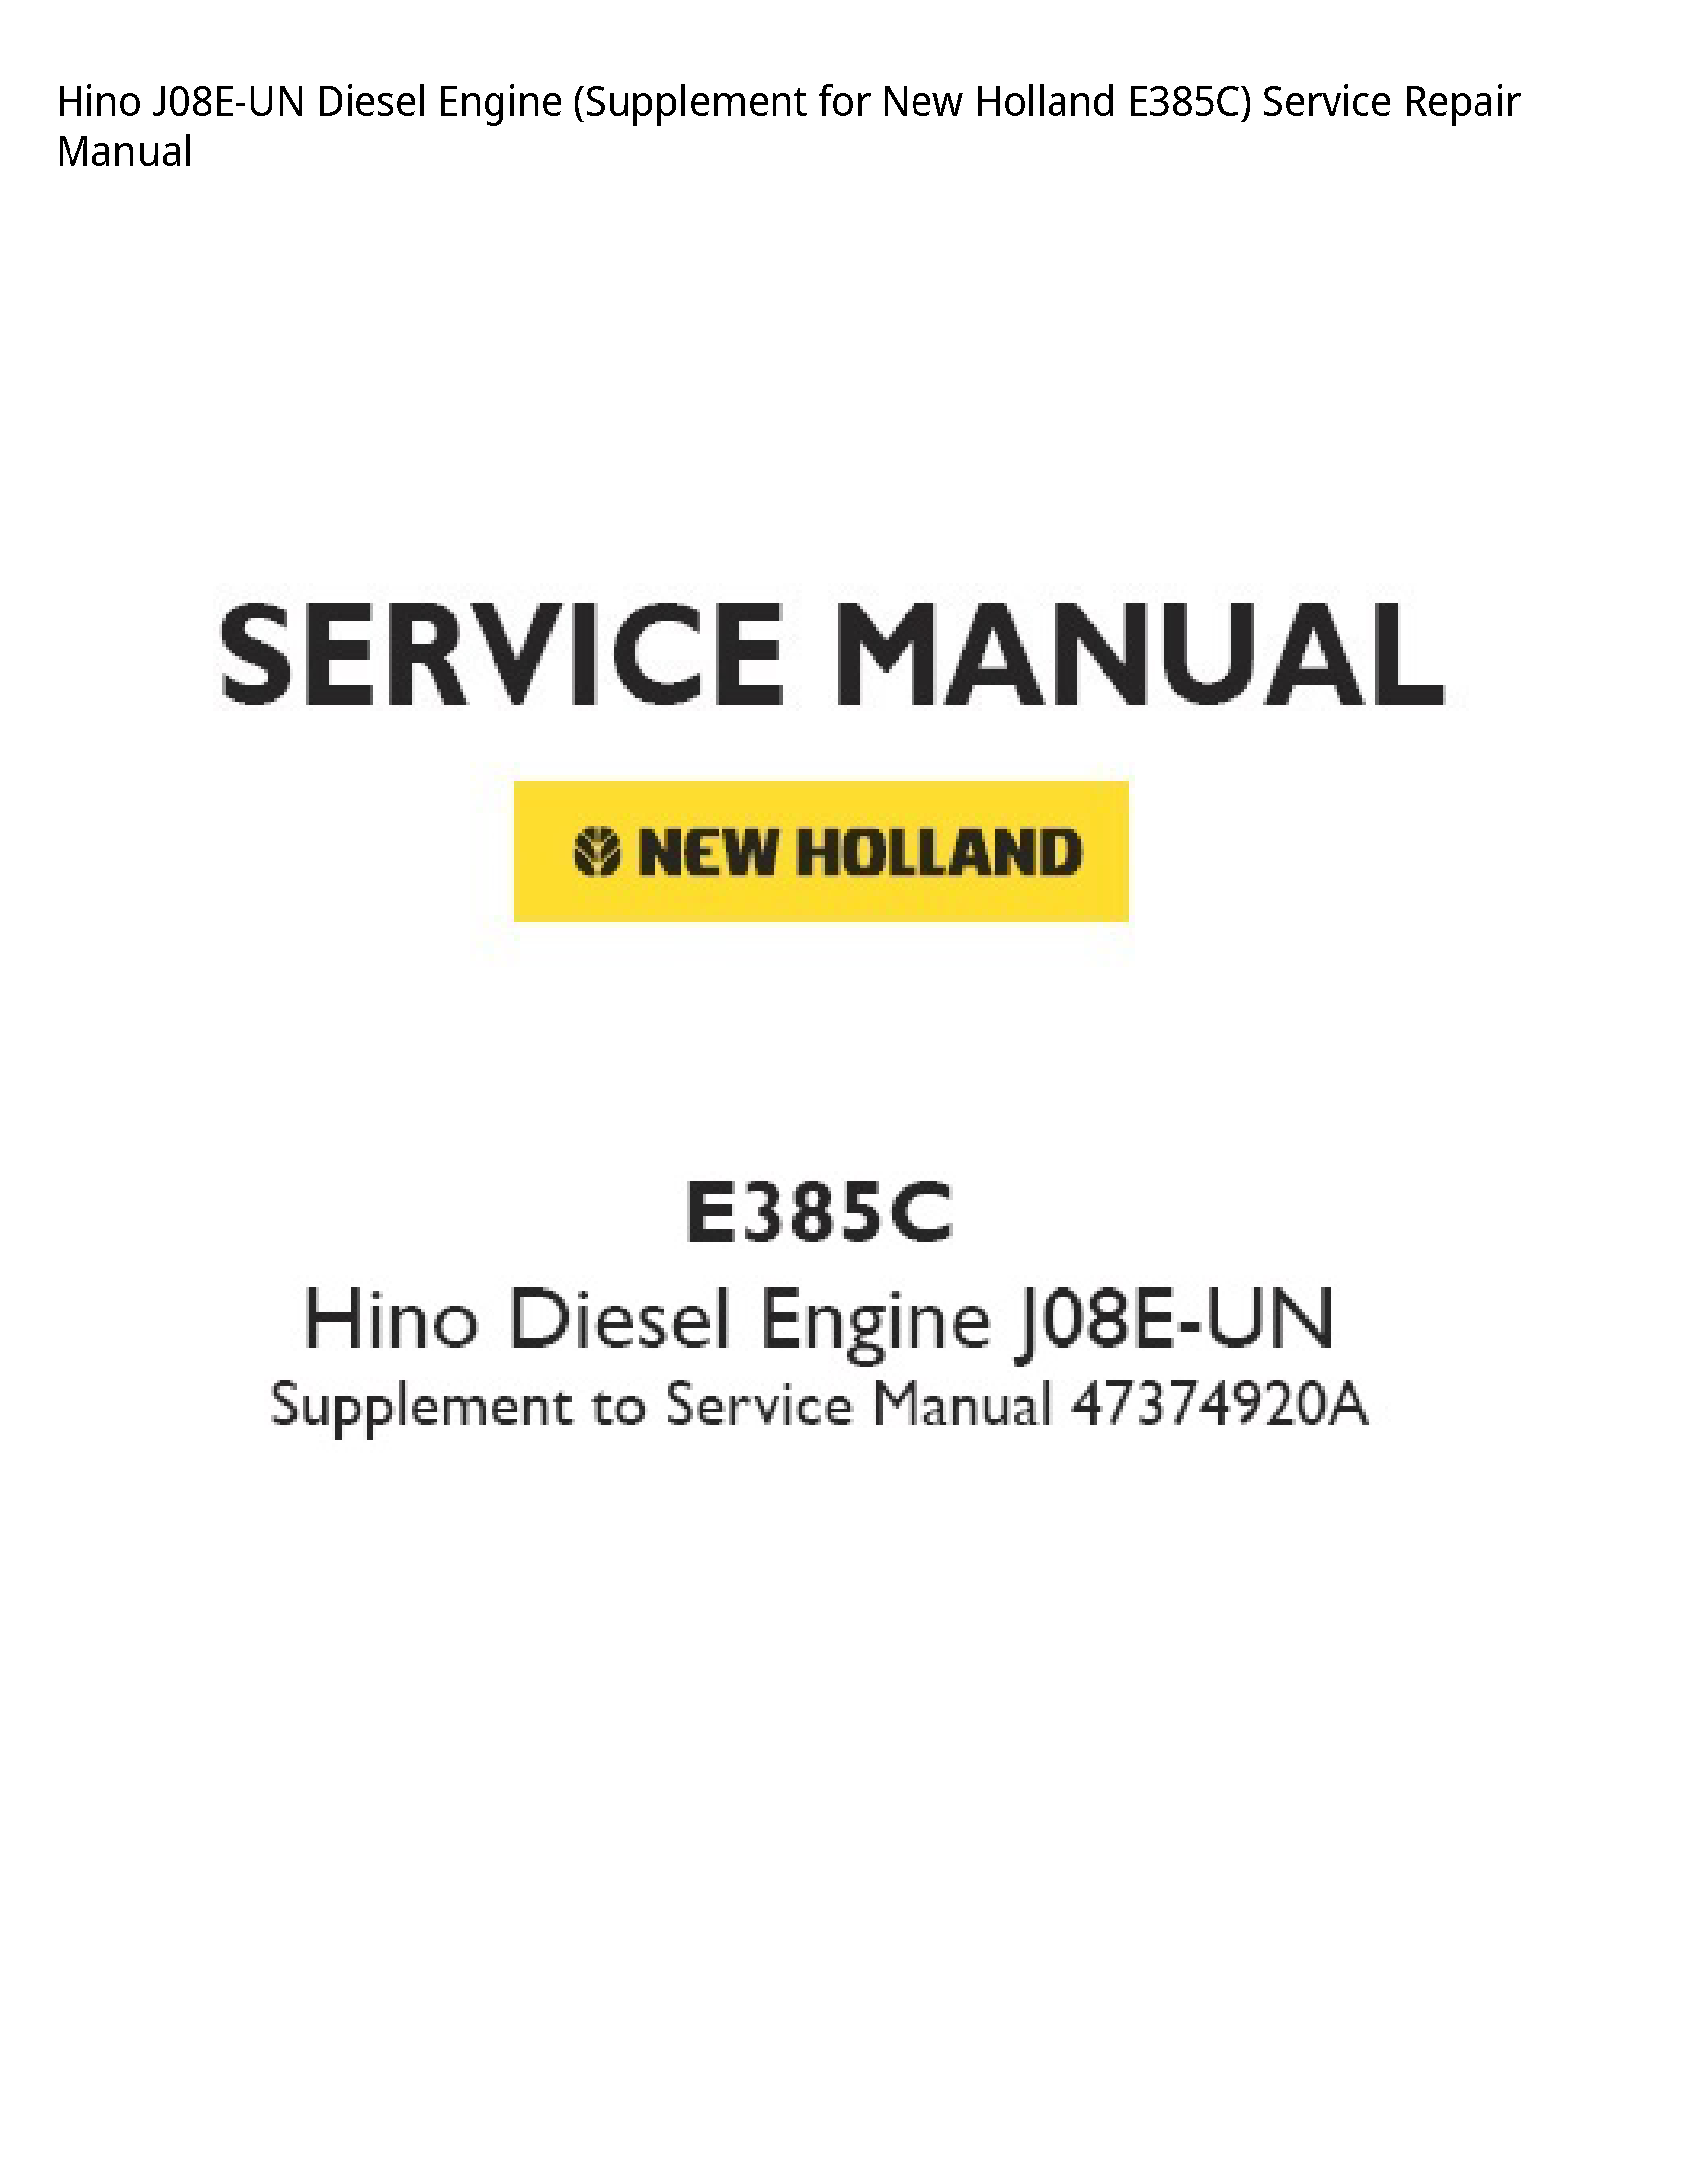 Hino J08E-UN Diesel Engine Supplement for New Holland manual